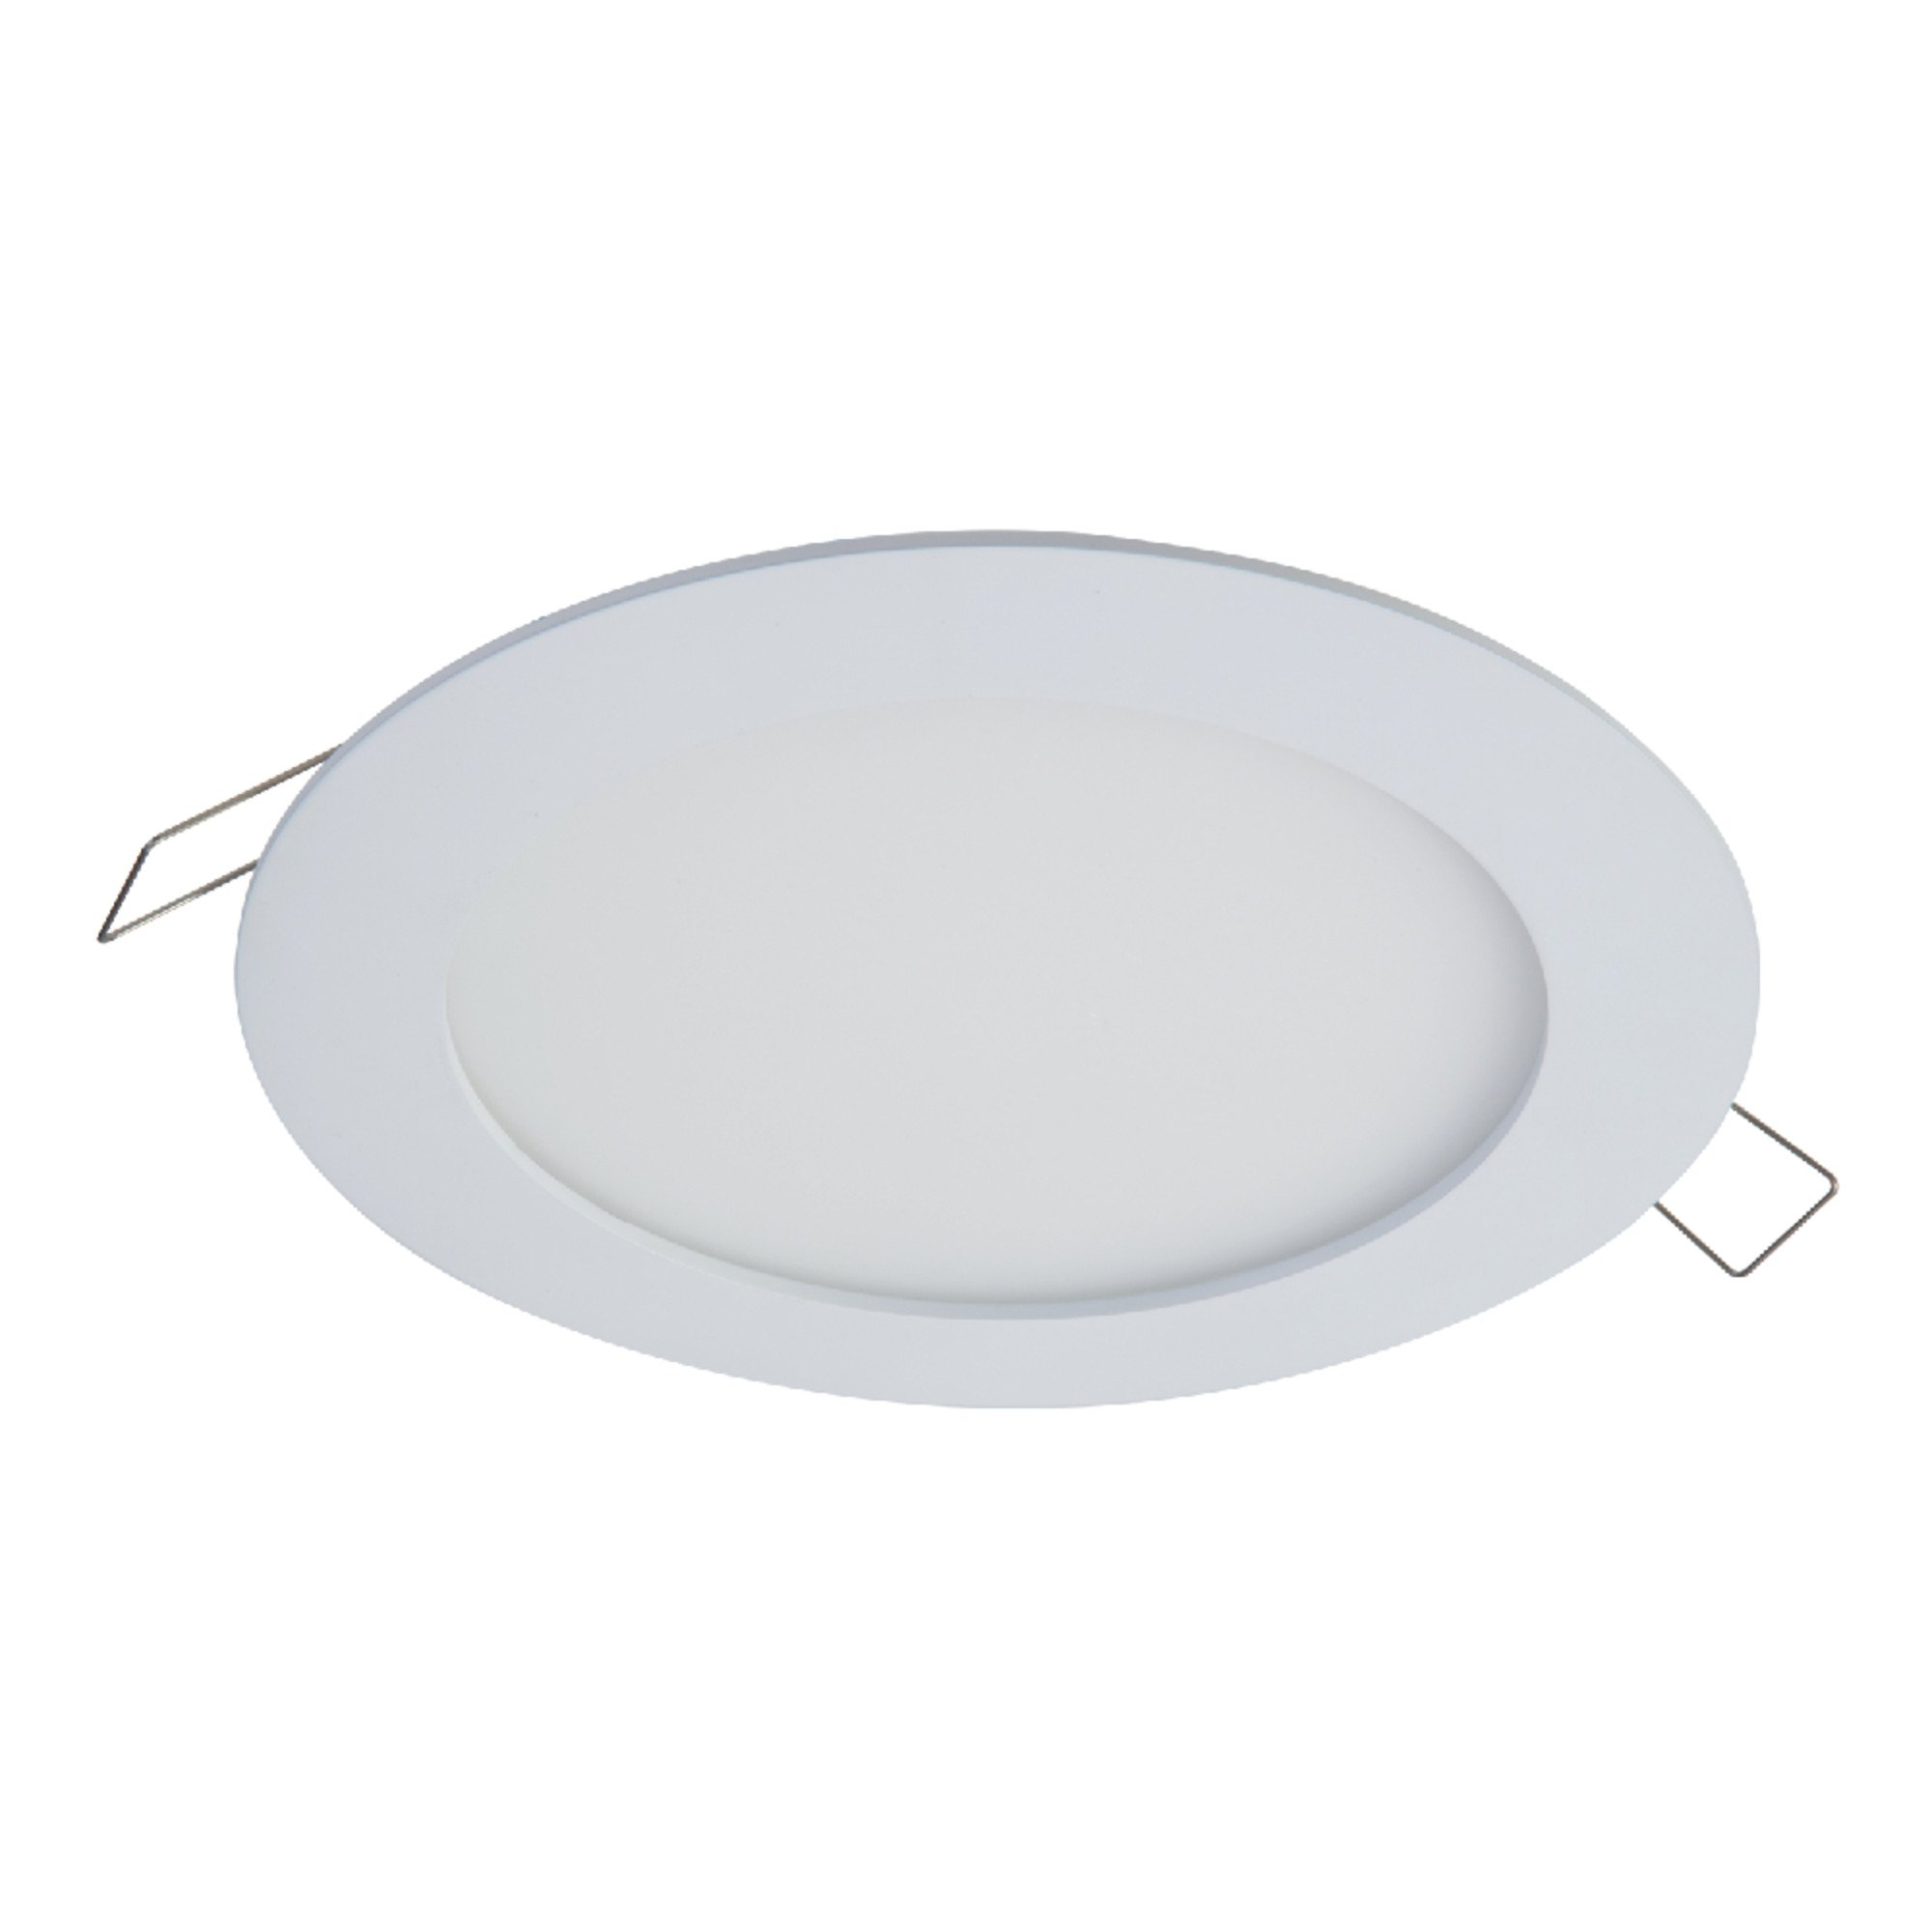 Halo SMD6R6930WHDM SMD-DM Lens Round Integrated LED Surface Mount Recessed Downlight Trim, 3000K (No Can Needed), 6.2'', White